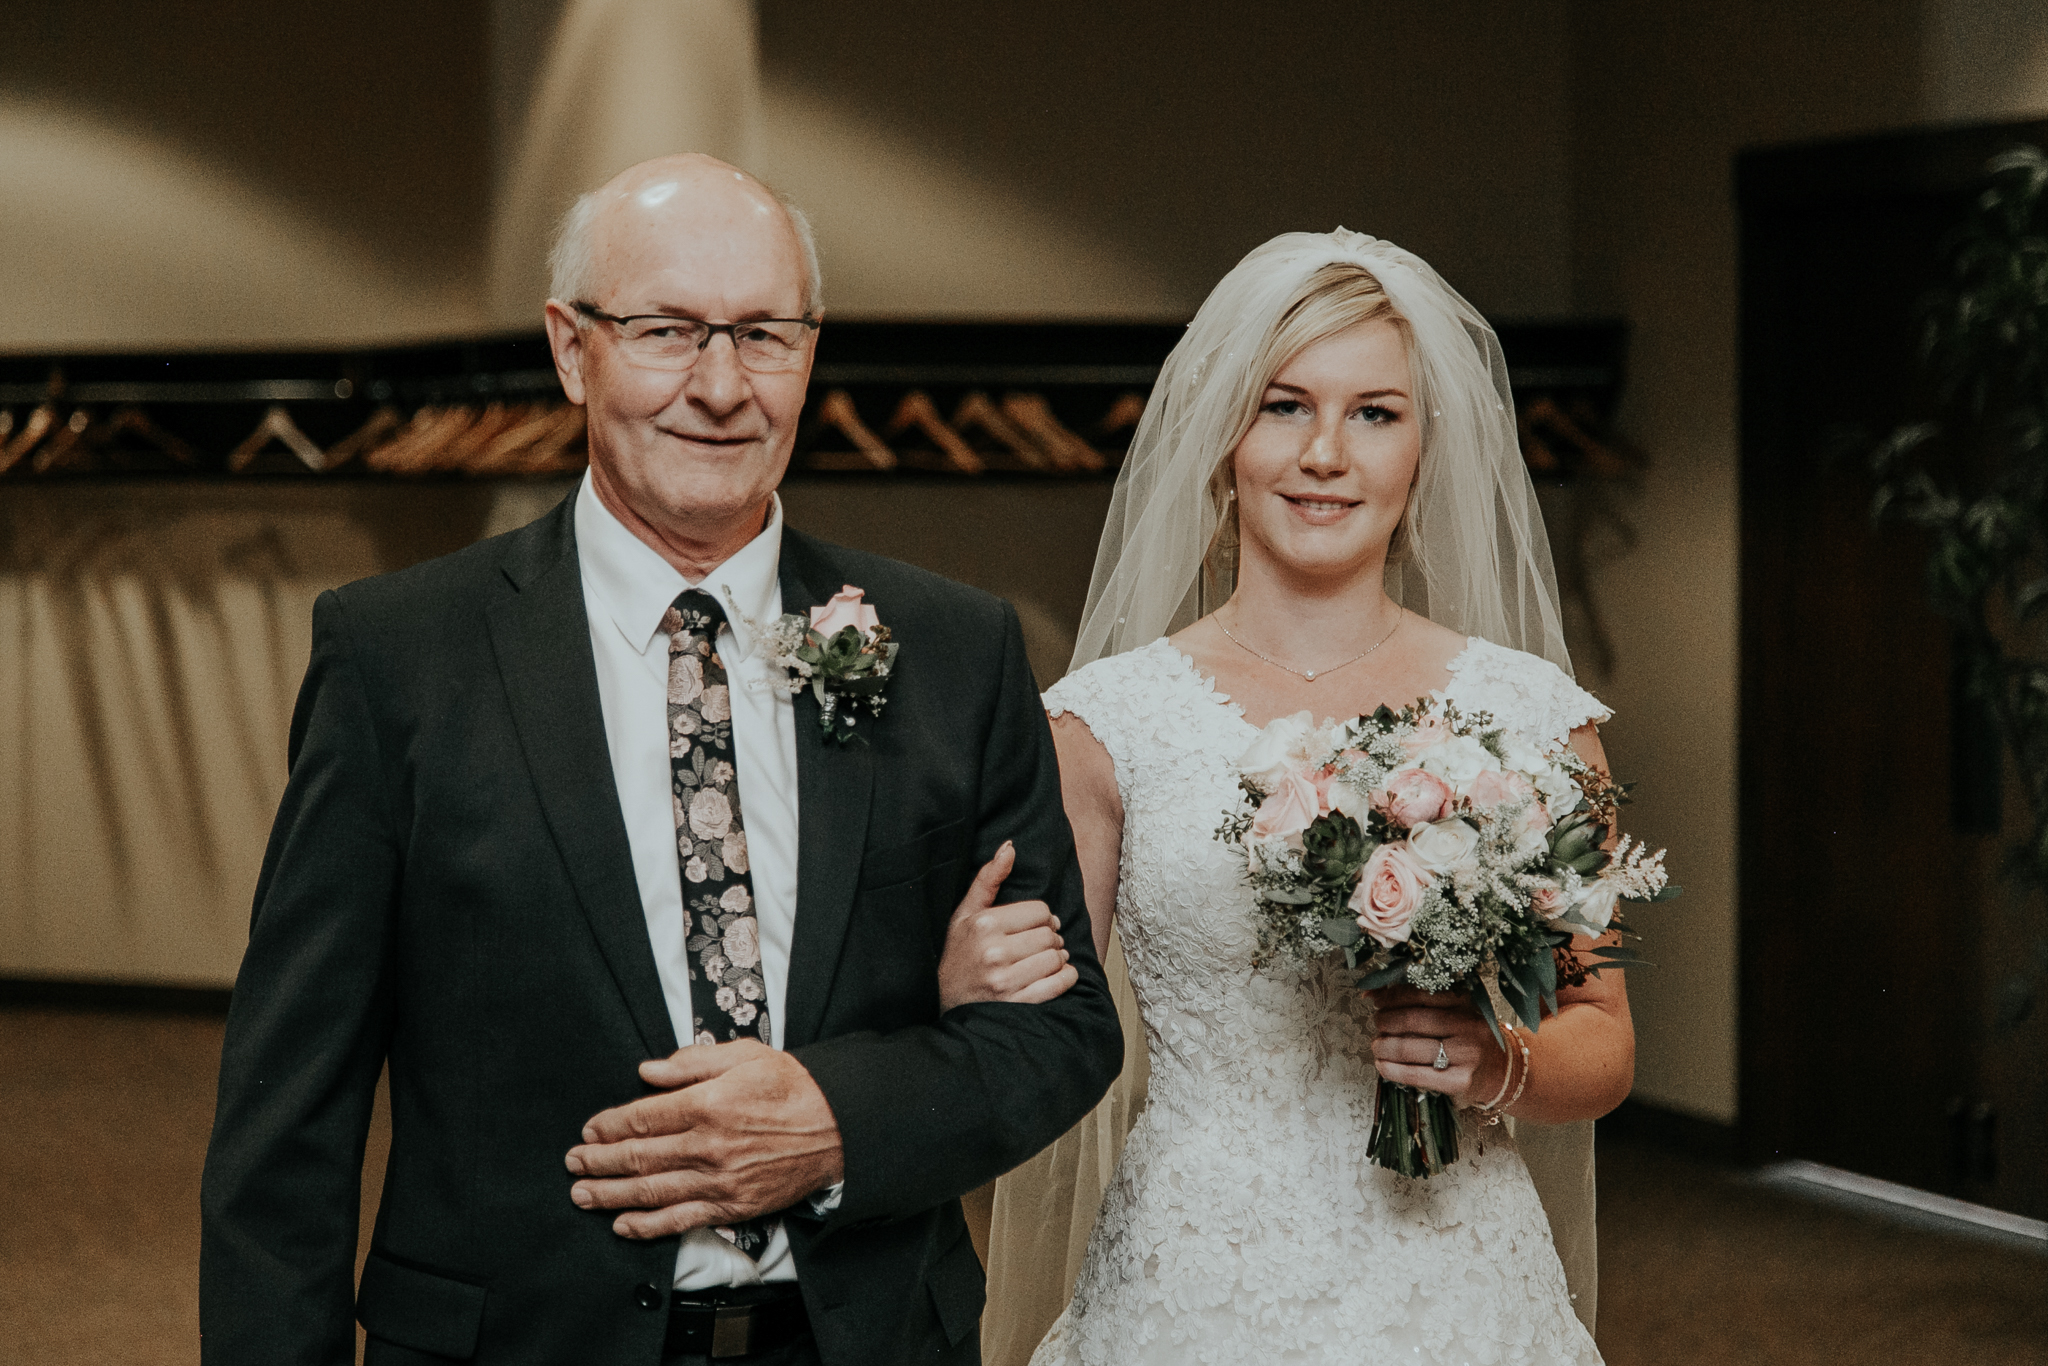 lethbridge-wedding-photographer-love-and-be-loved-photography-steven-marlene-reformed-church-photo-picture-image-17.jpg